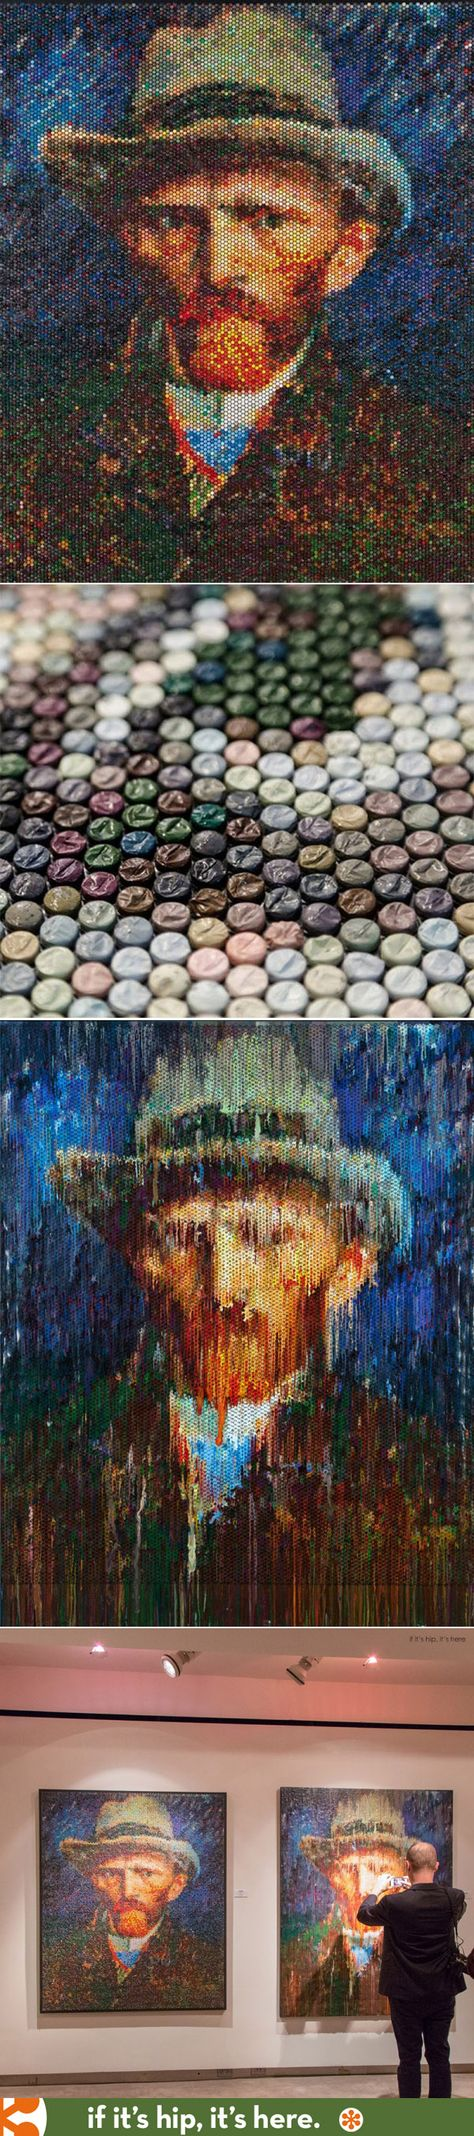 These are amazing.  Famous paintings recreated by injecting different colored paints into bubble wrap and companion pieces of the drippings from the plastic reveal an impression of the work. | http://www.ifitshipitshere.com/pop-go-masters-paint-injected-bubble-wrap-impressions/